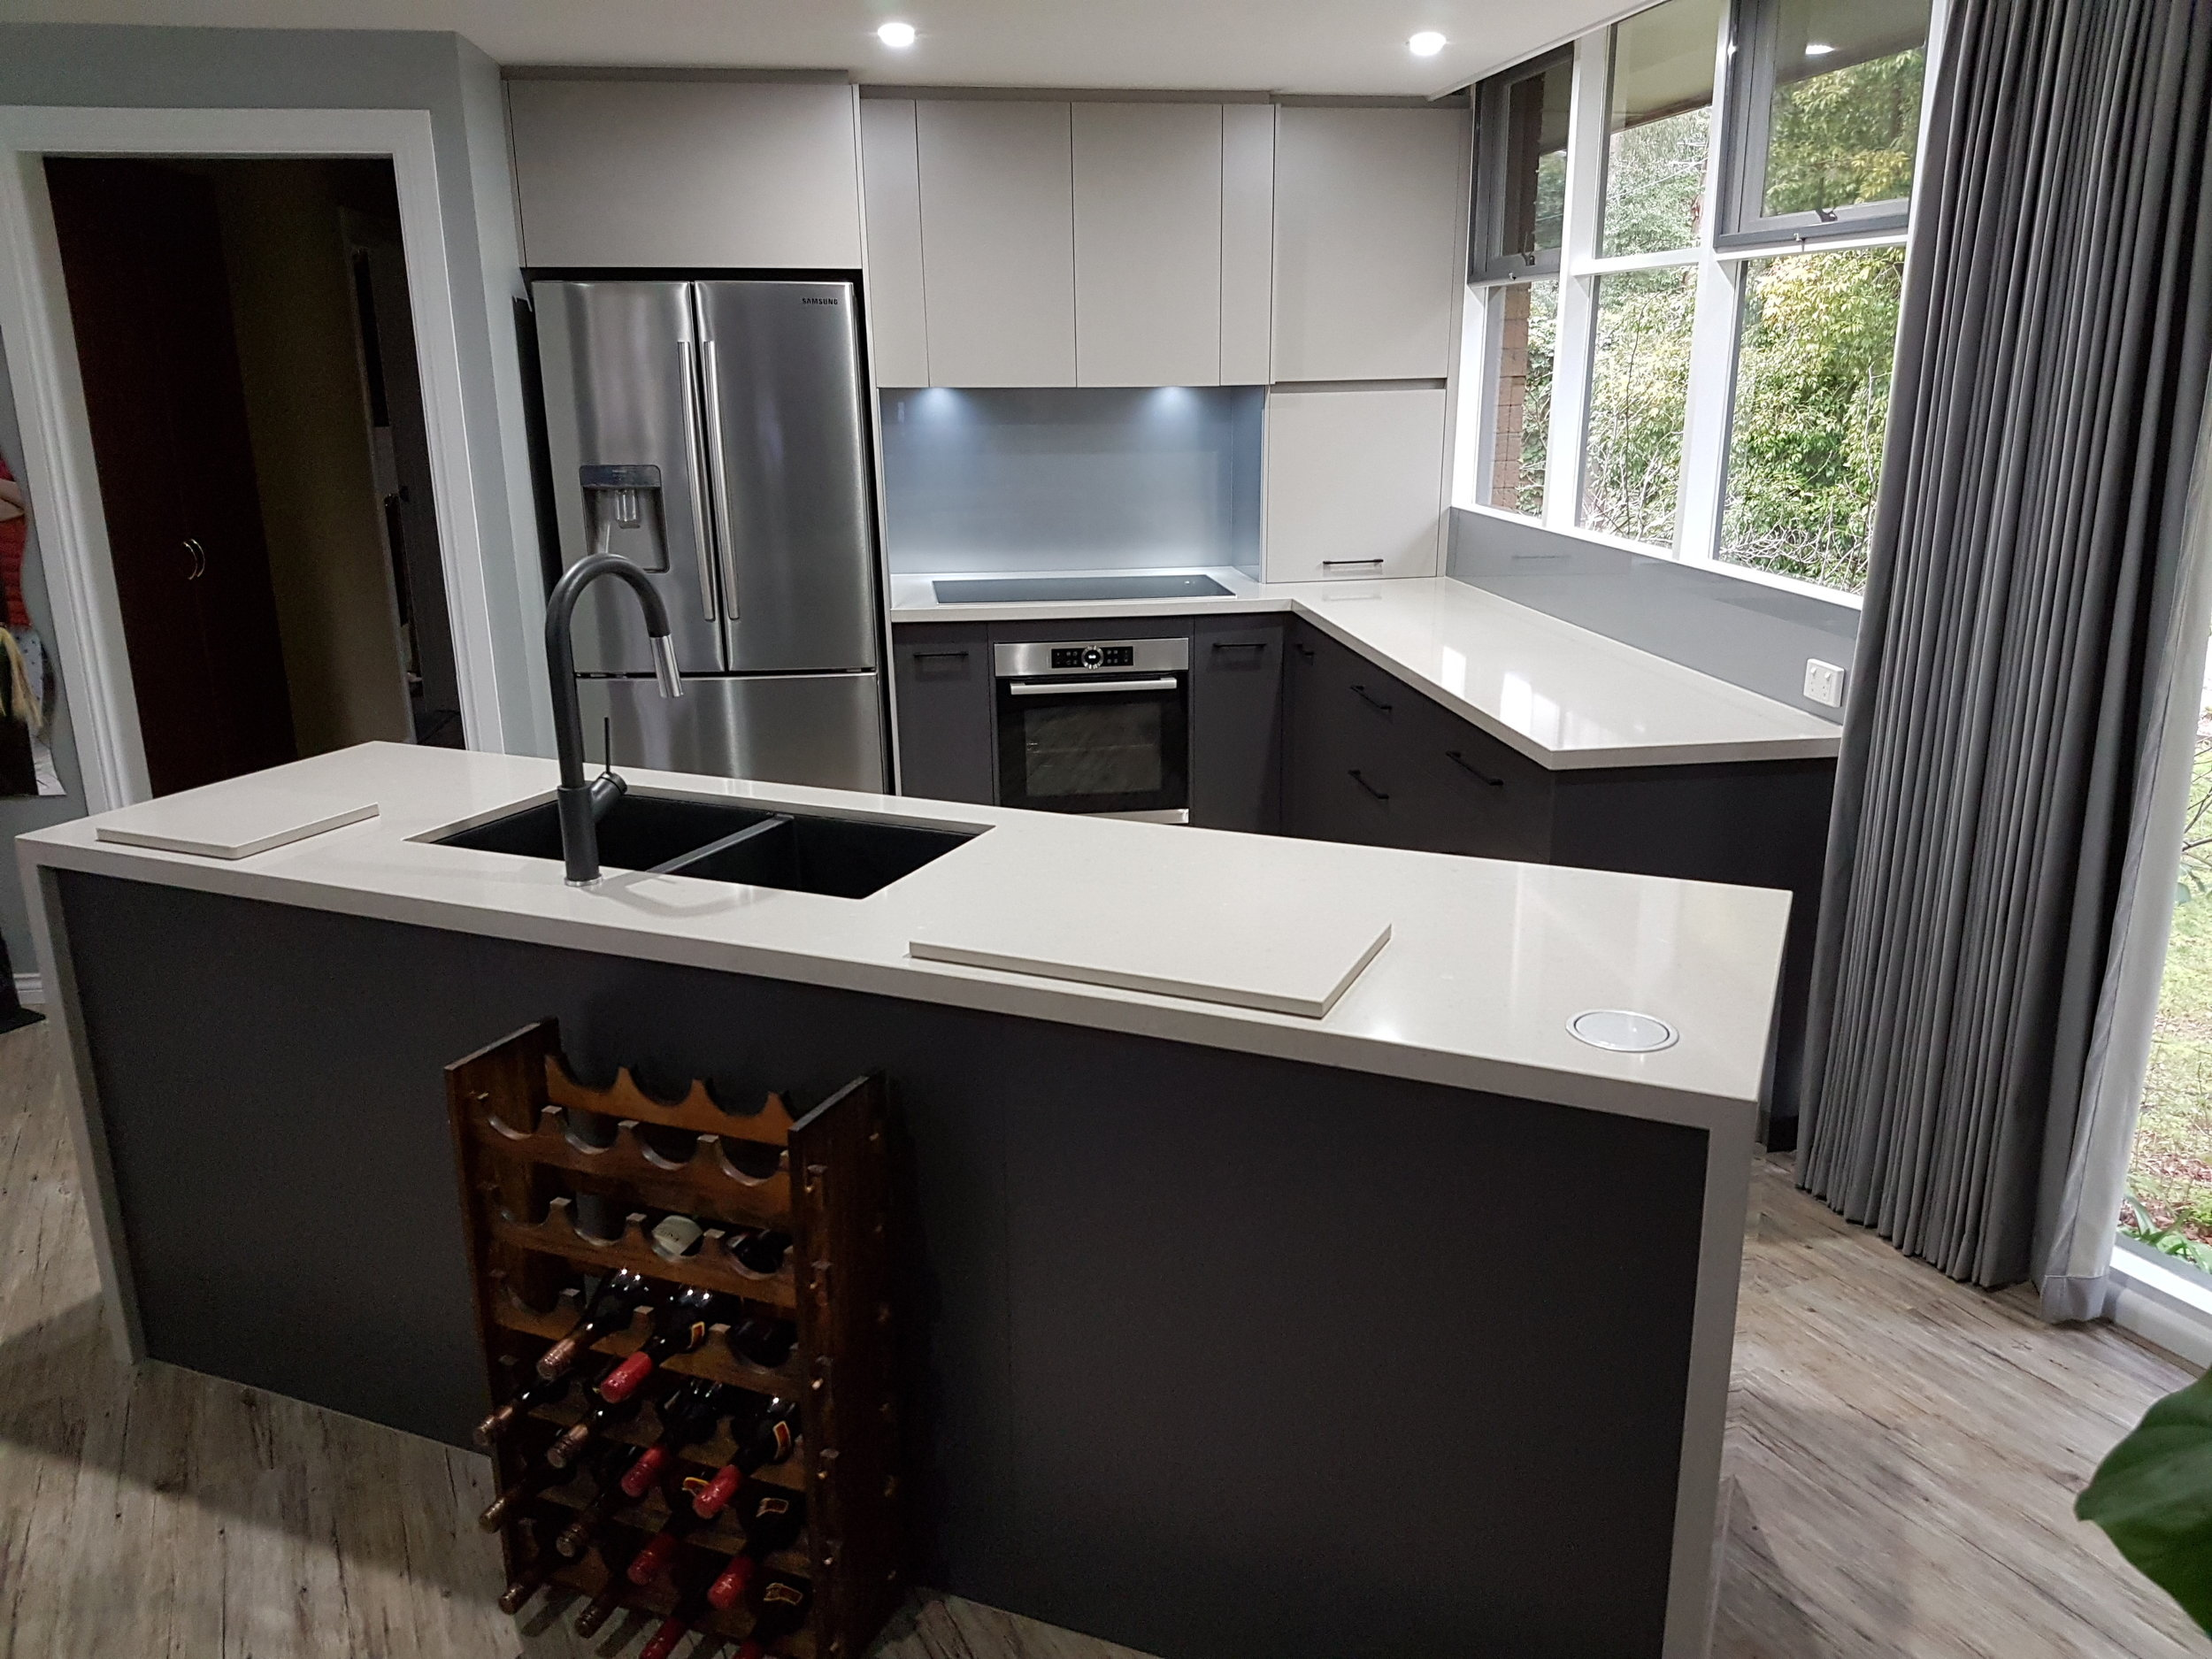 A beautifully positioned kitchen featuring an island bench with waterfall ends.